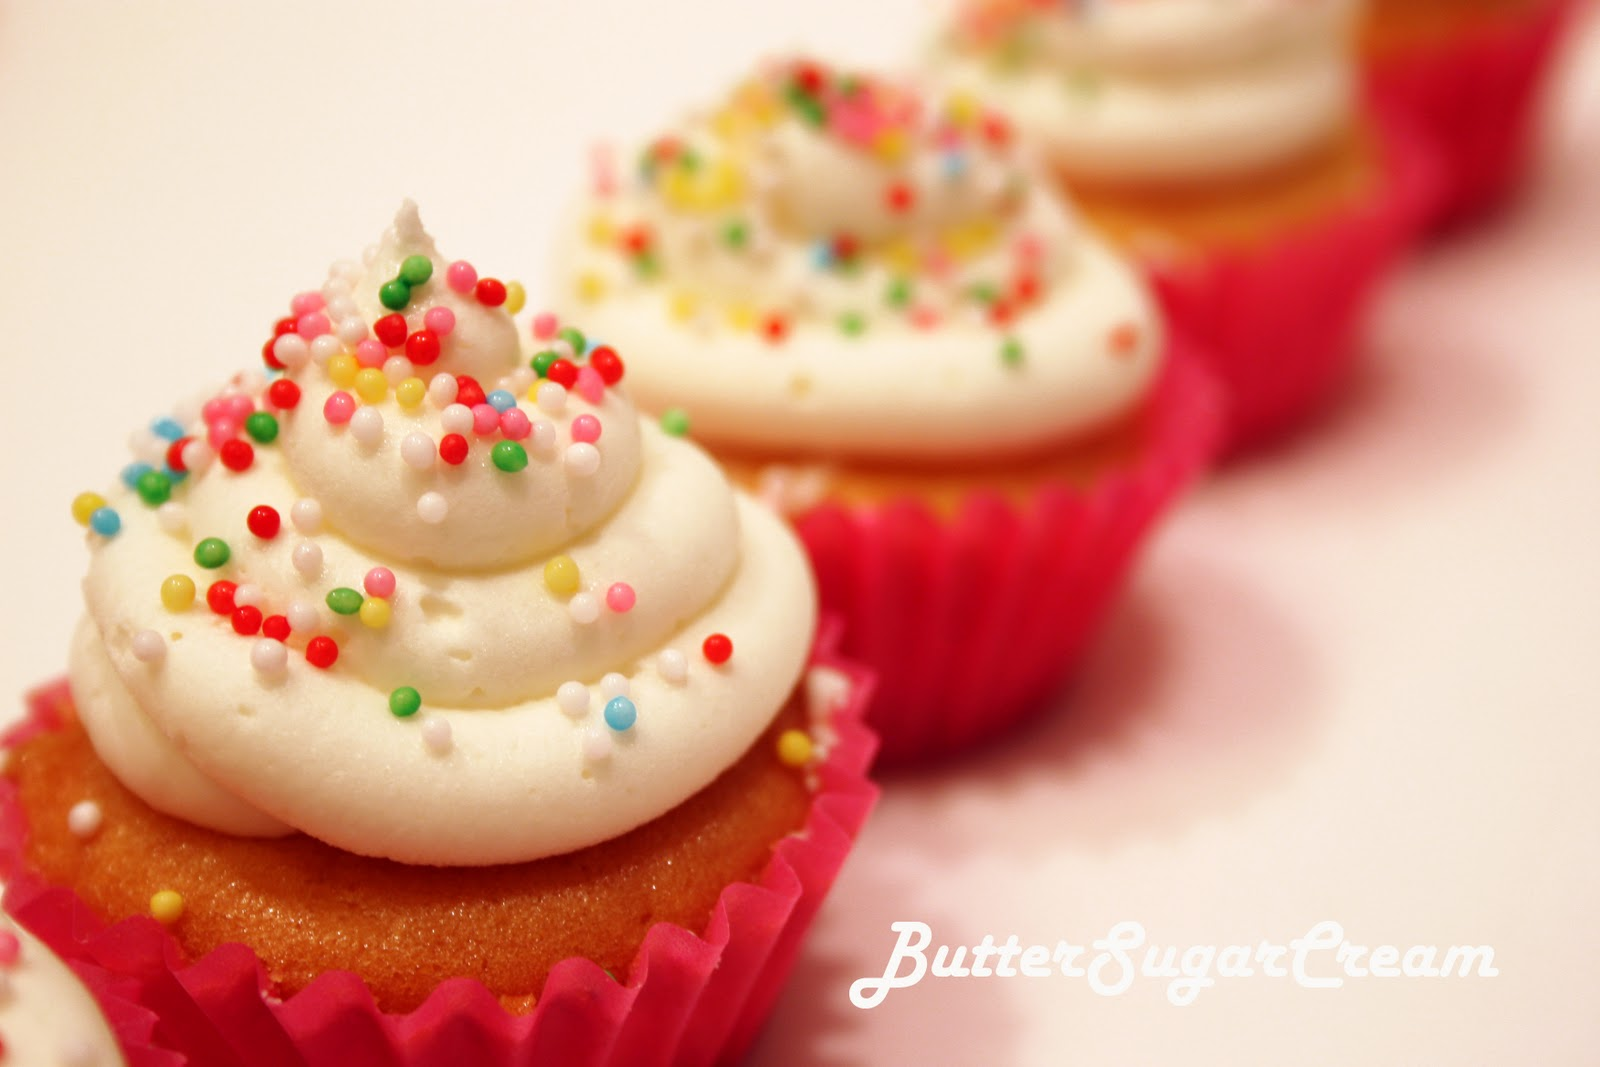 Buttersugarcream Cupcakes And Delectables By Gerry